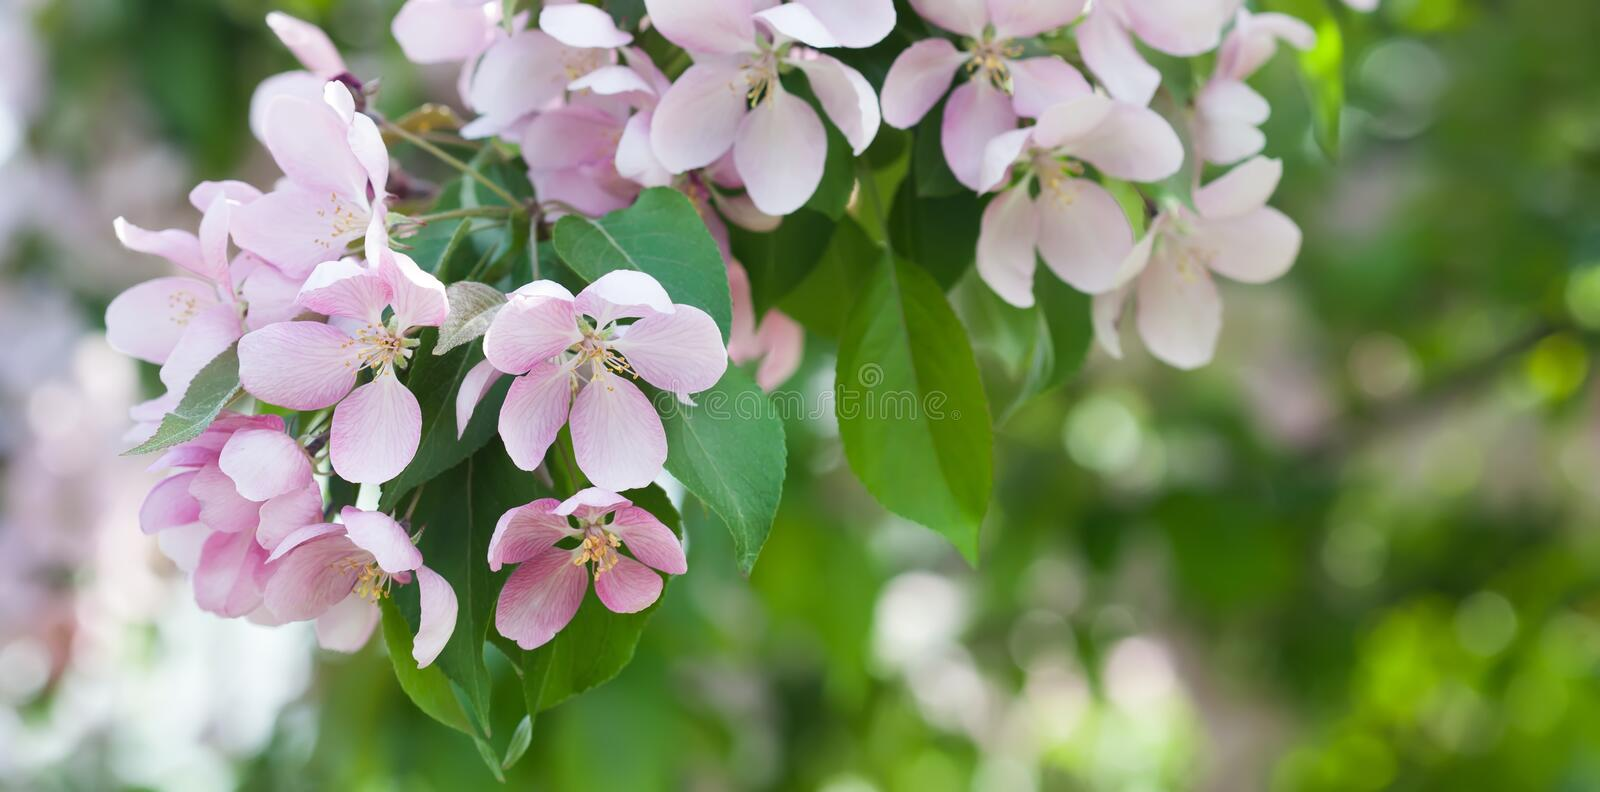 Apple flowers branch macro view. Blooming fruit tree. pistil, stamen, petal detailed image. Spring nature landscape royalty free stock photos